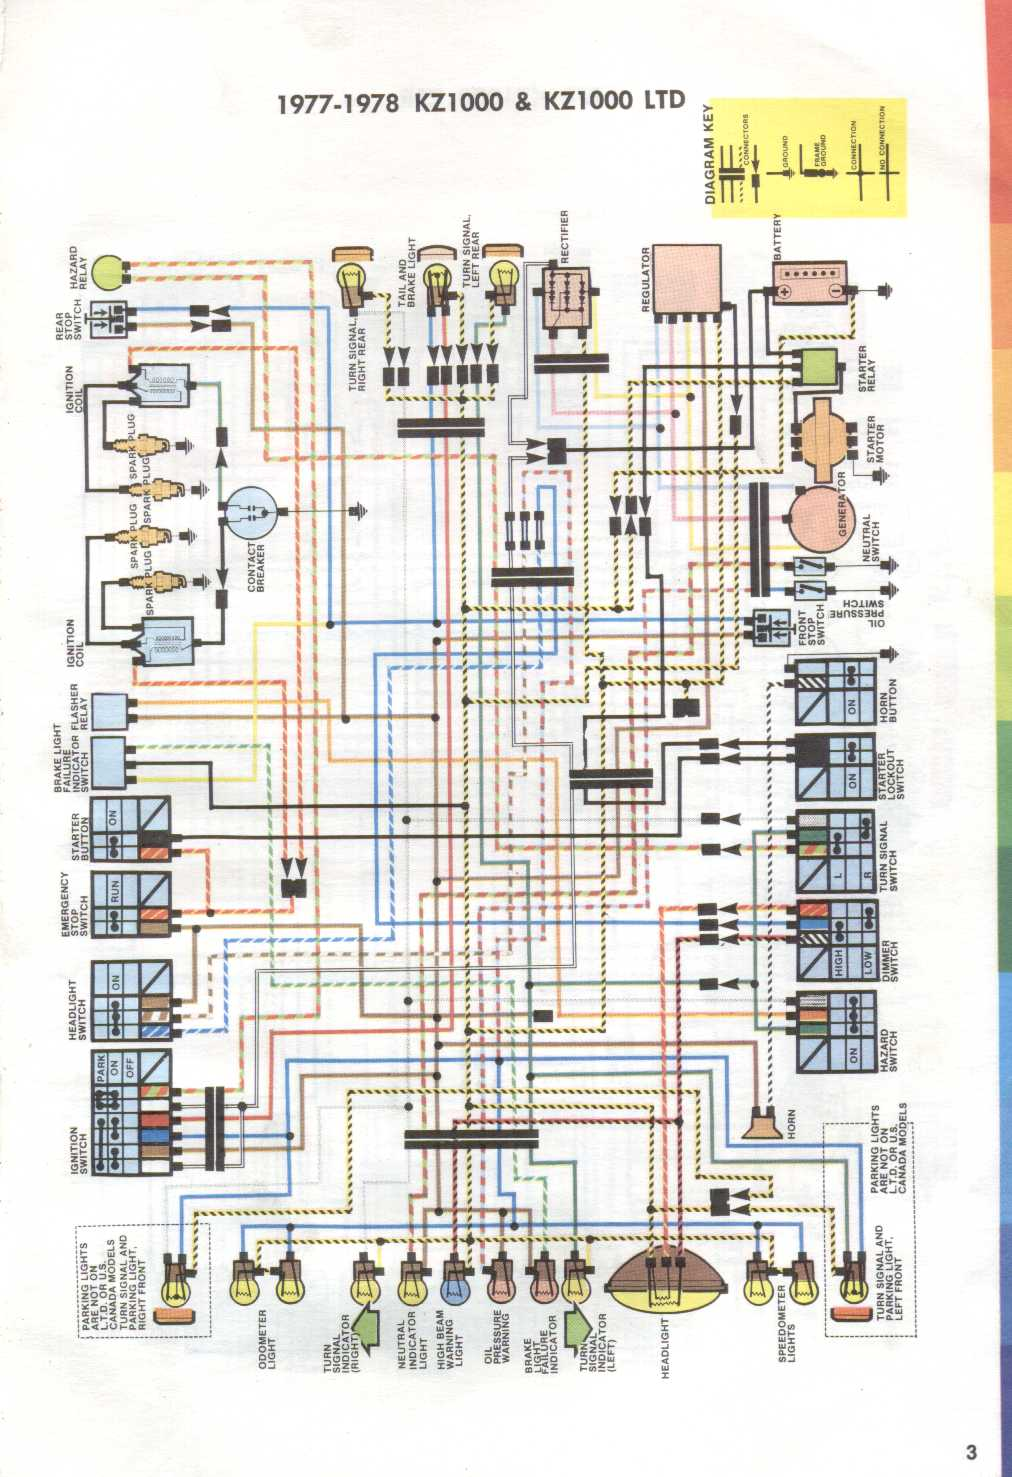 Tci Wiring Diagram Yamaha 750 Maxim Libraries Library77 78 Kz1000 Ltd Motorcycle Diagrams 77